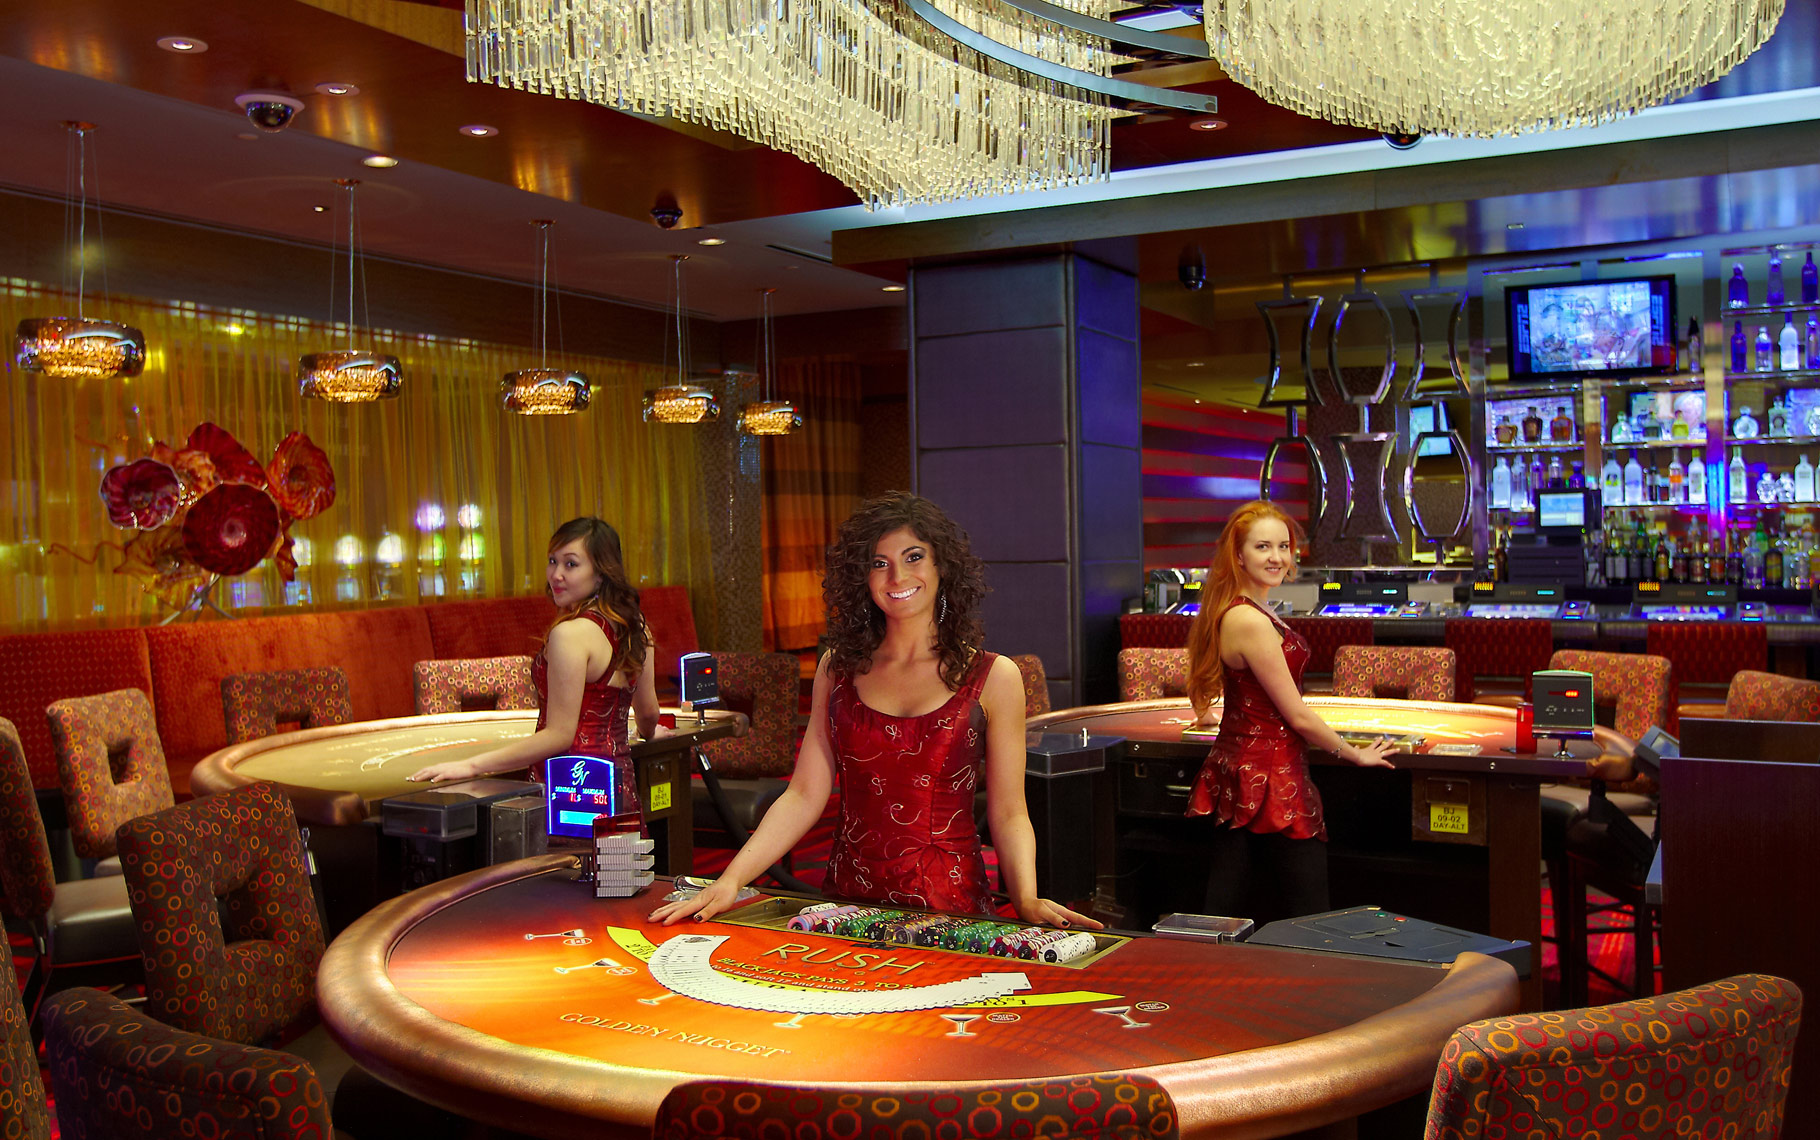 Casino interior lifestyle Photographer